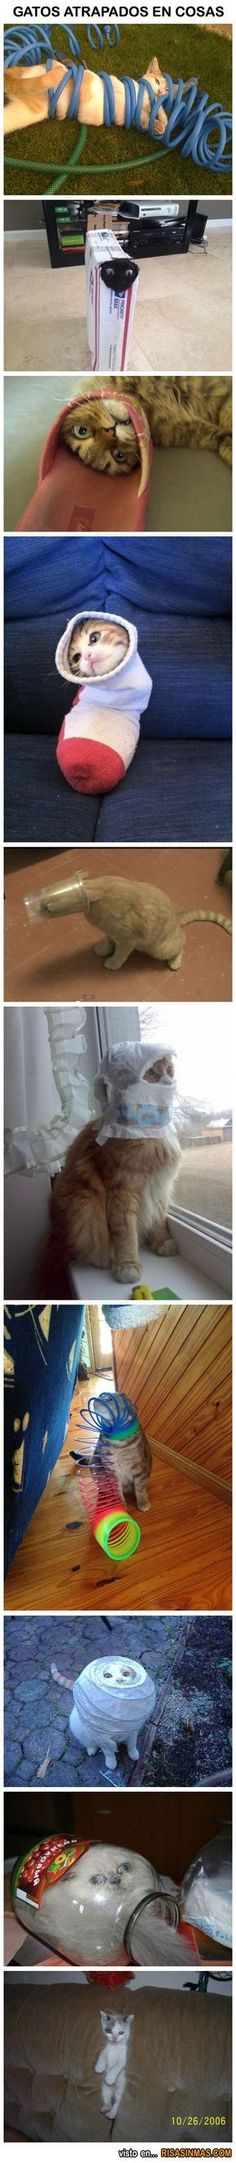 Gatos atrapados dentro de cosas. (scheduled via http://www.tailwindapp.com?utm_source=pinterest&utm_medium=twpin)